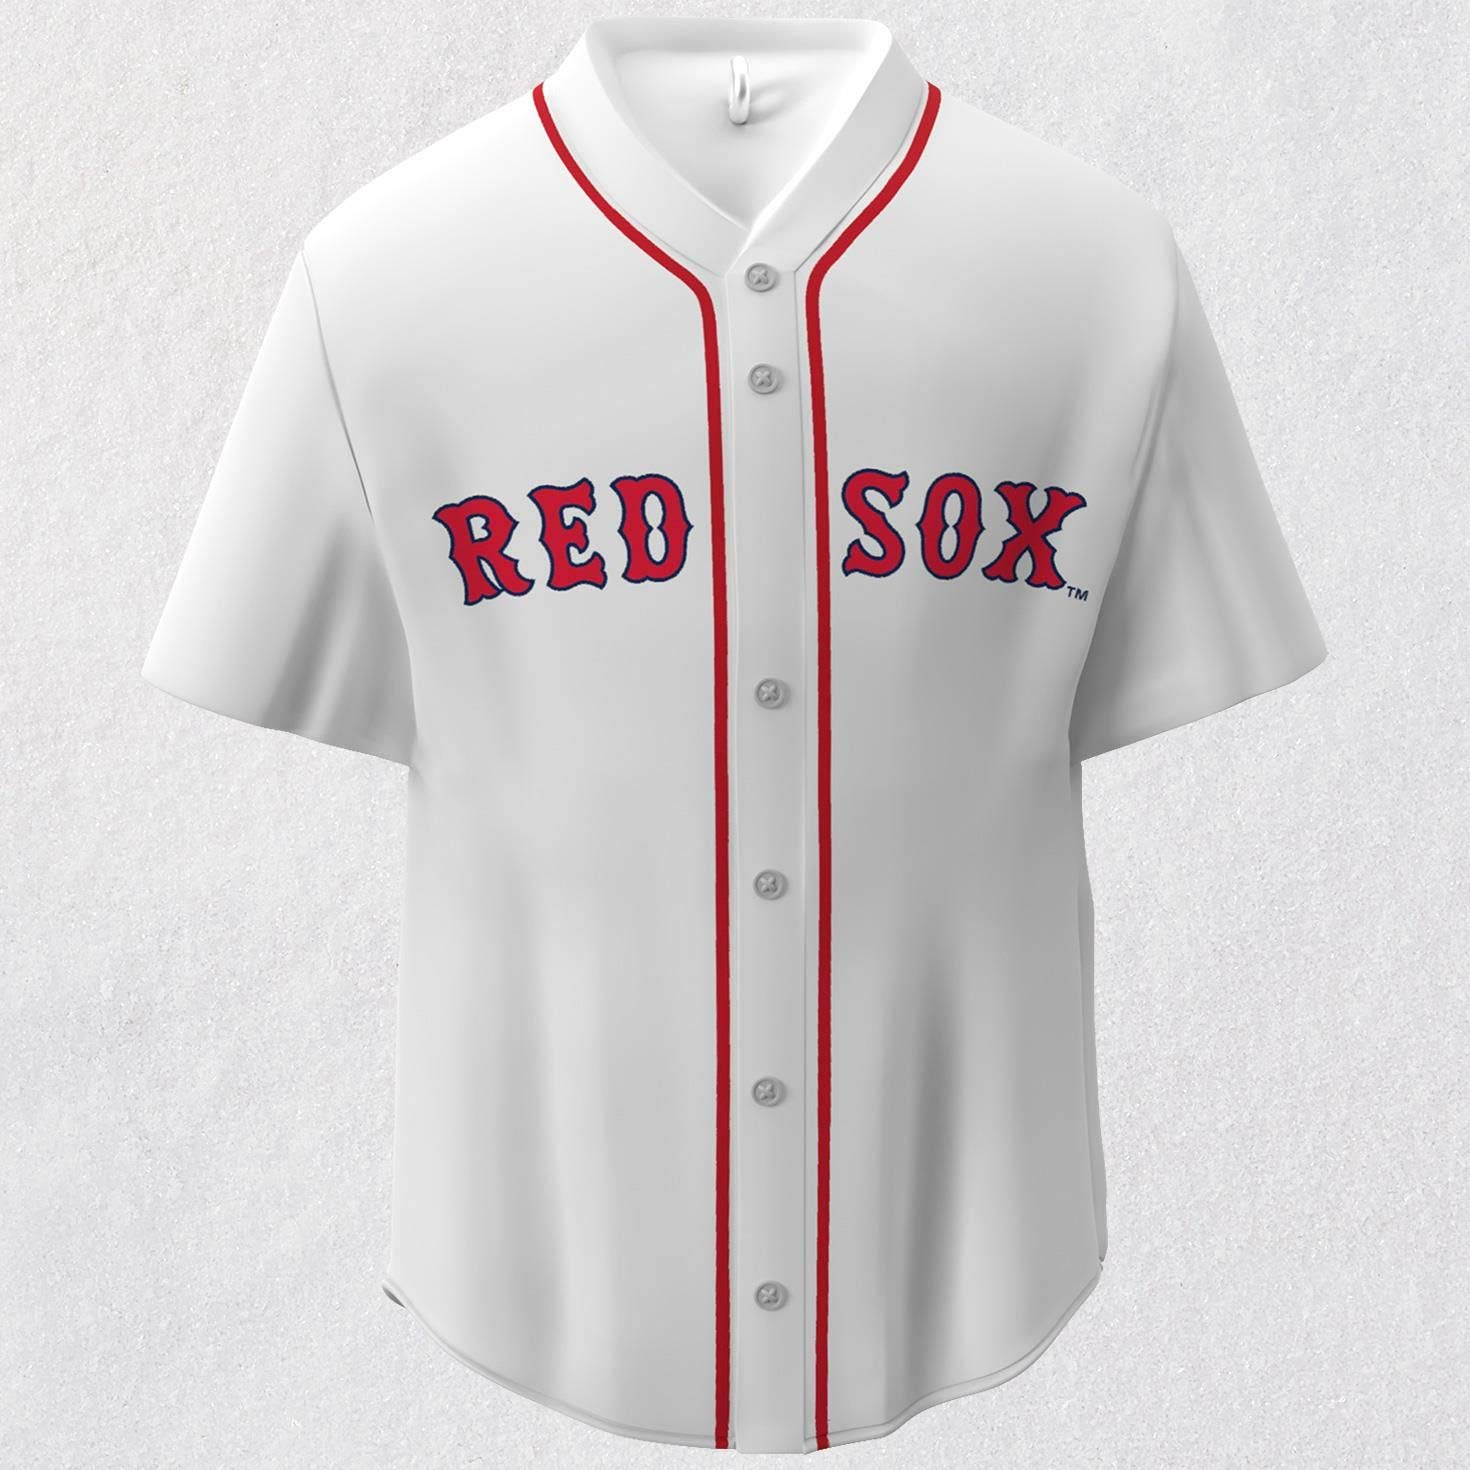 6e4949bf8 Amazon.com: Hallmark MLB Boston Red Sox Jersey Keepsake Christmas Ornaments:  Home & Kitchen